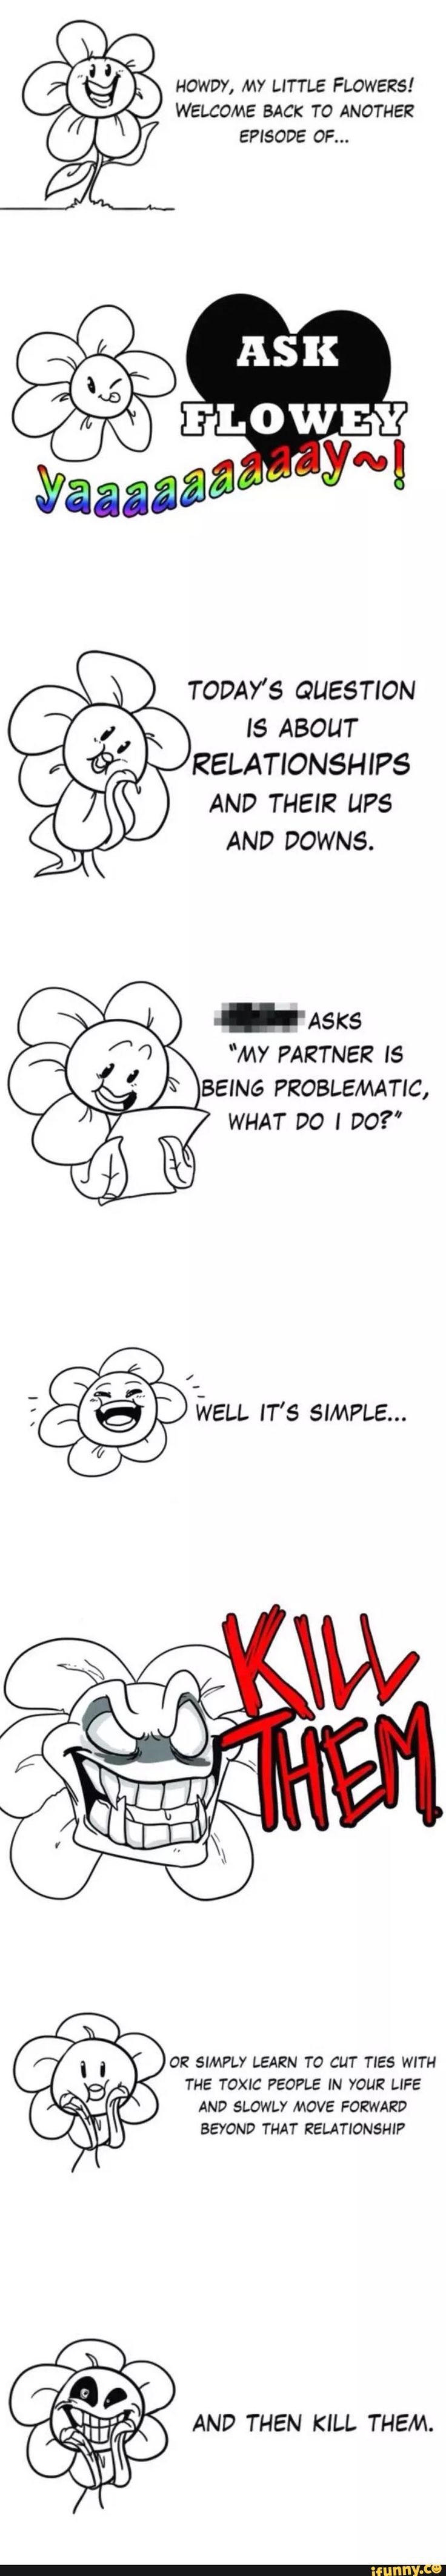 Flowey gives relationship advice. A+, Flowey.